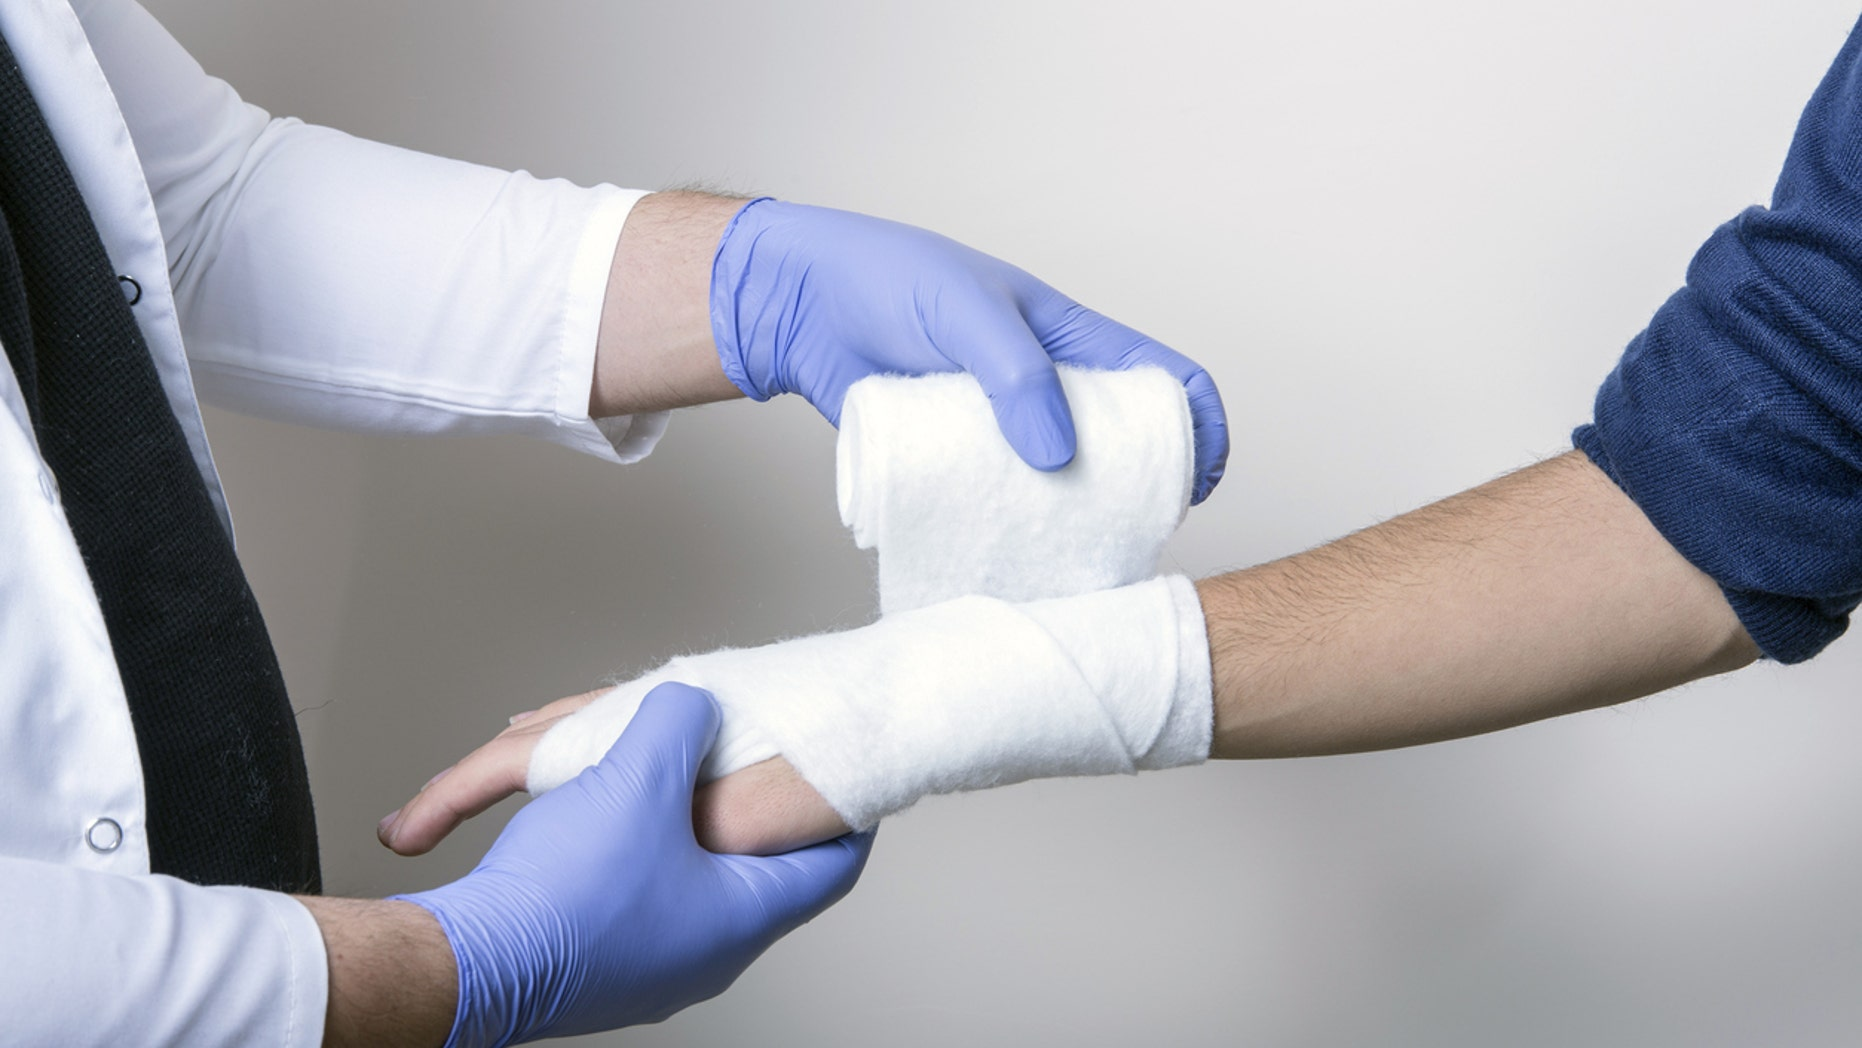 8 reasons why your wound won't heal | Fox News